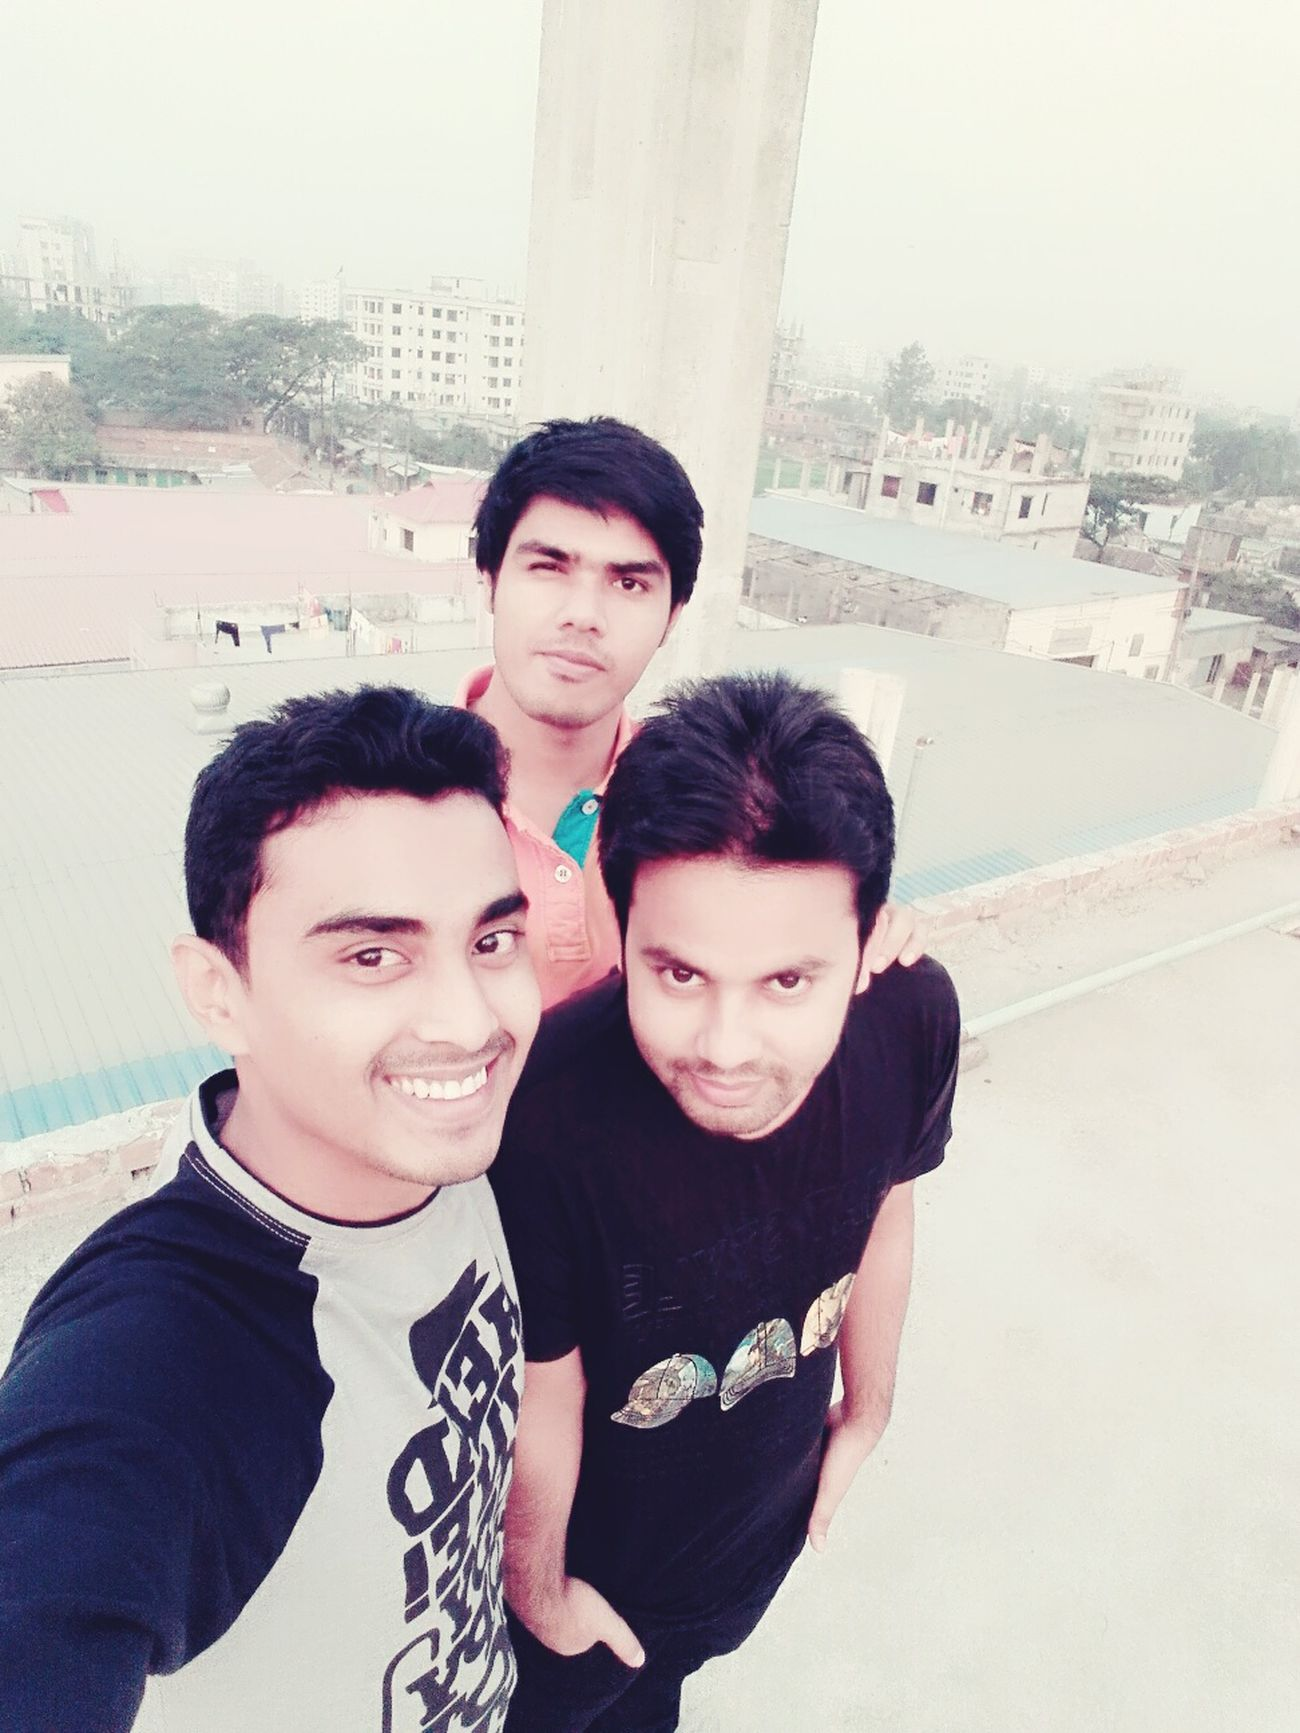 Hello World Taking Photos Check This Out We_are_friends 3idiots 💥 Taking Photos Rofftop Enjoying Life Selfie ✌